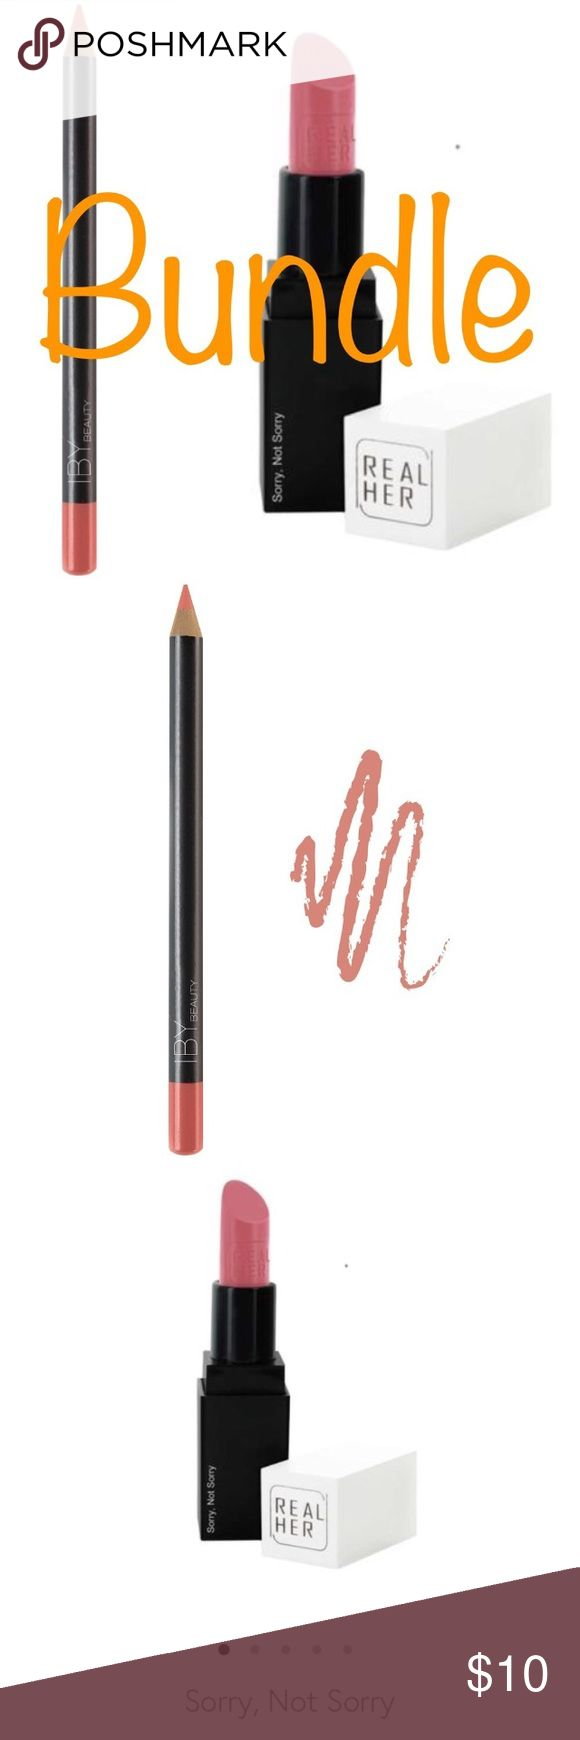 🖤 Makeup Bundle IBY Coral Lip Pencil &&& Real Her Lippie in Sorry, Not Sorry! Brand New, Never Been Tested ☺️ Sephora Makeup